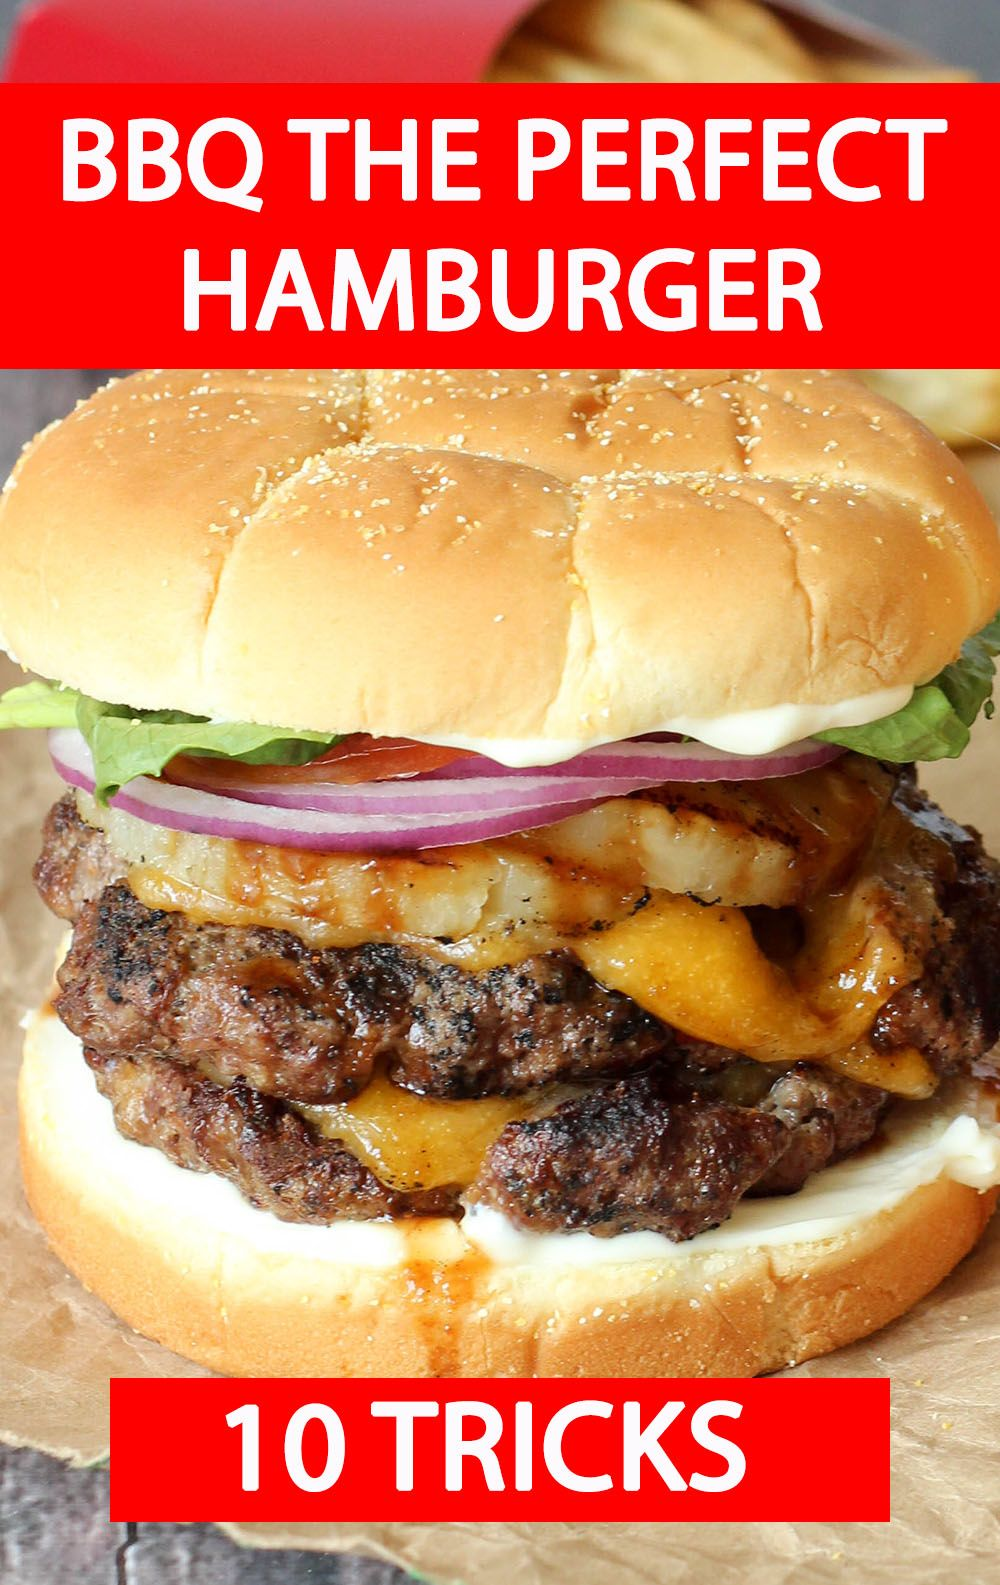 BBQ The Perfect Hamburger images